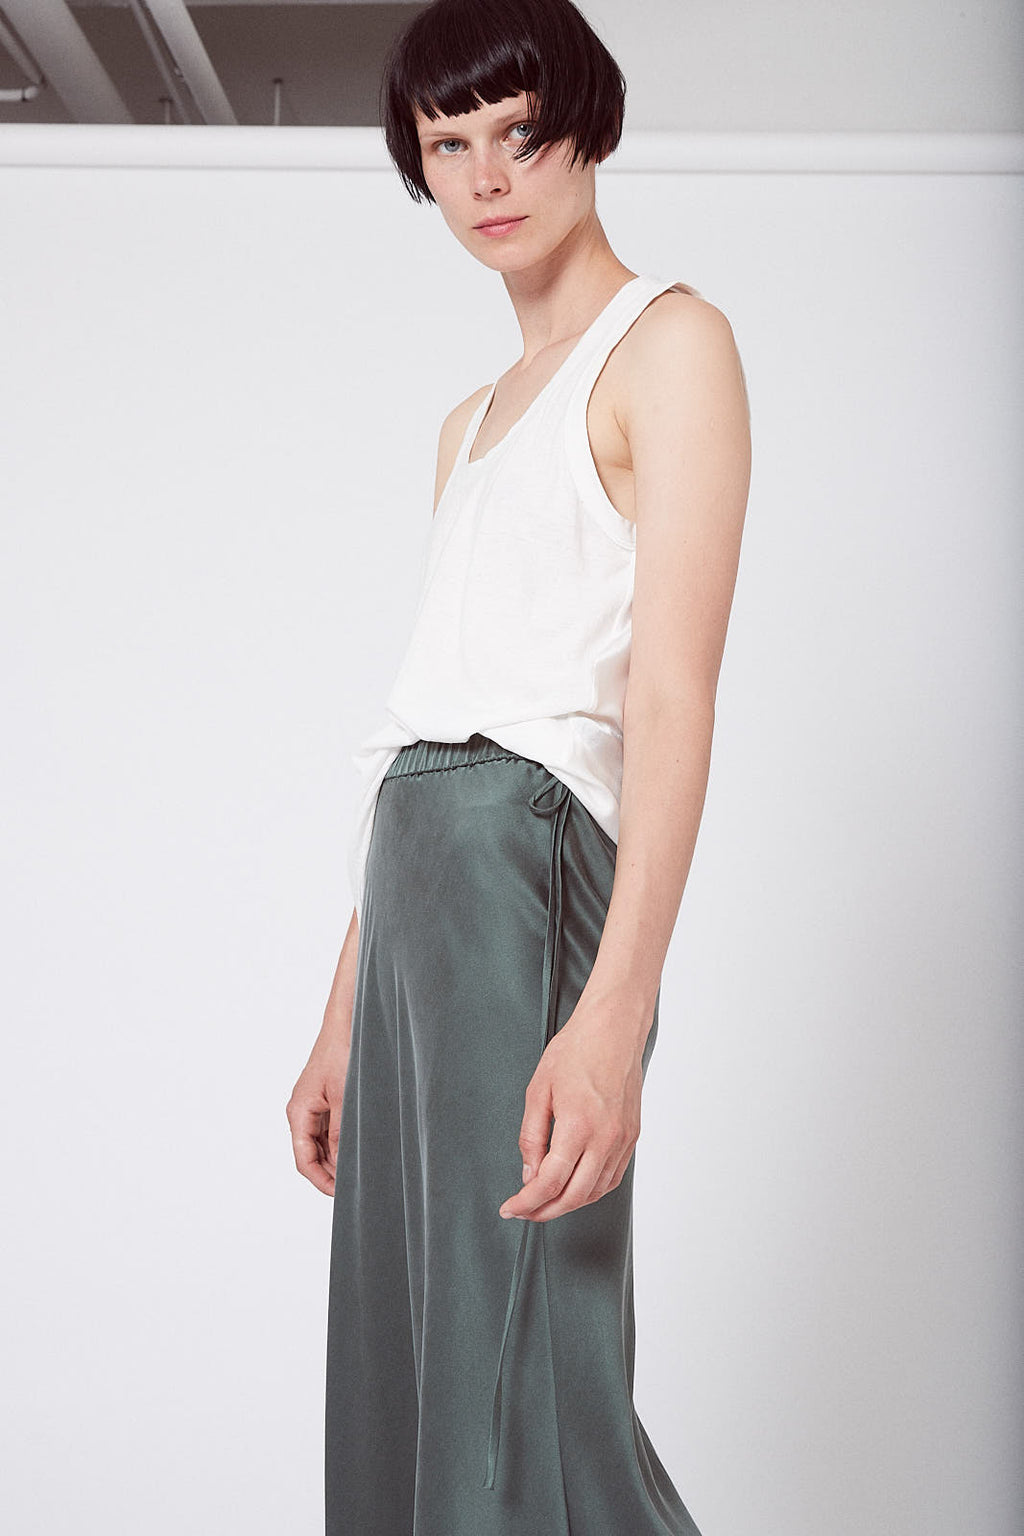 KES Elongated Scalloped Skirt